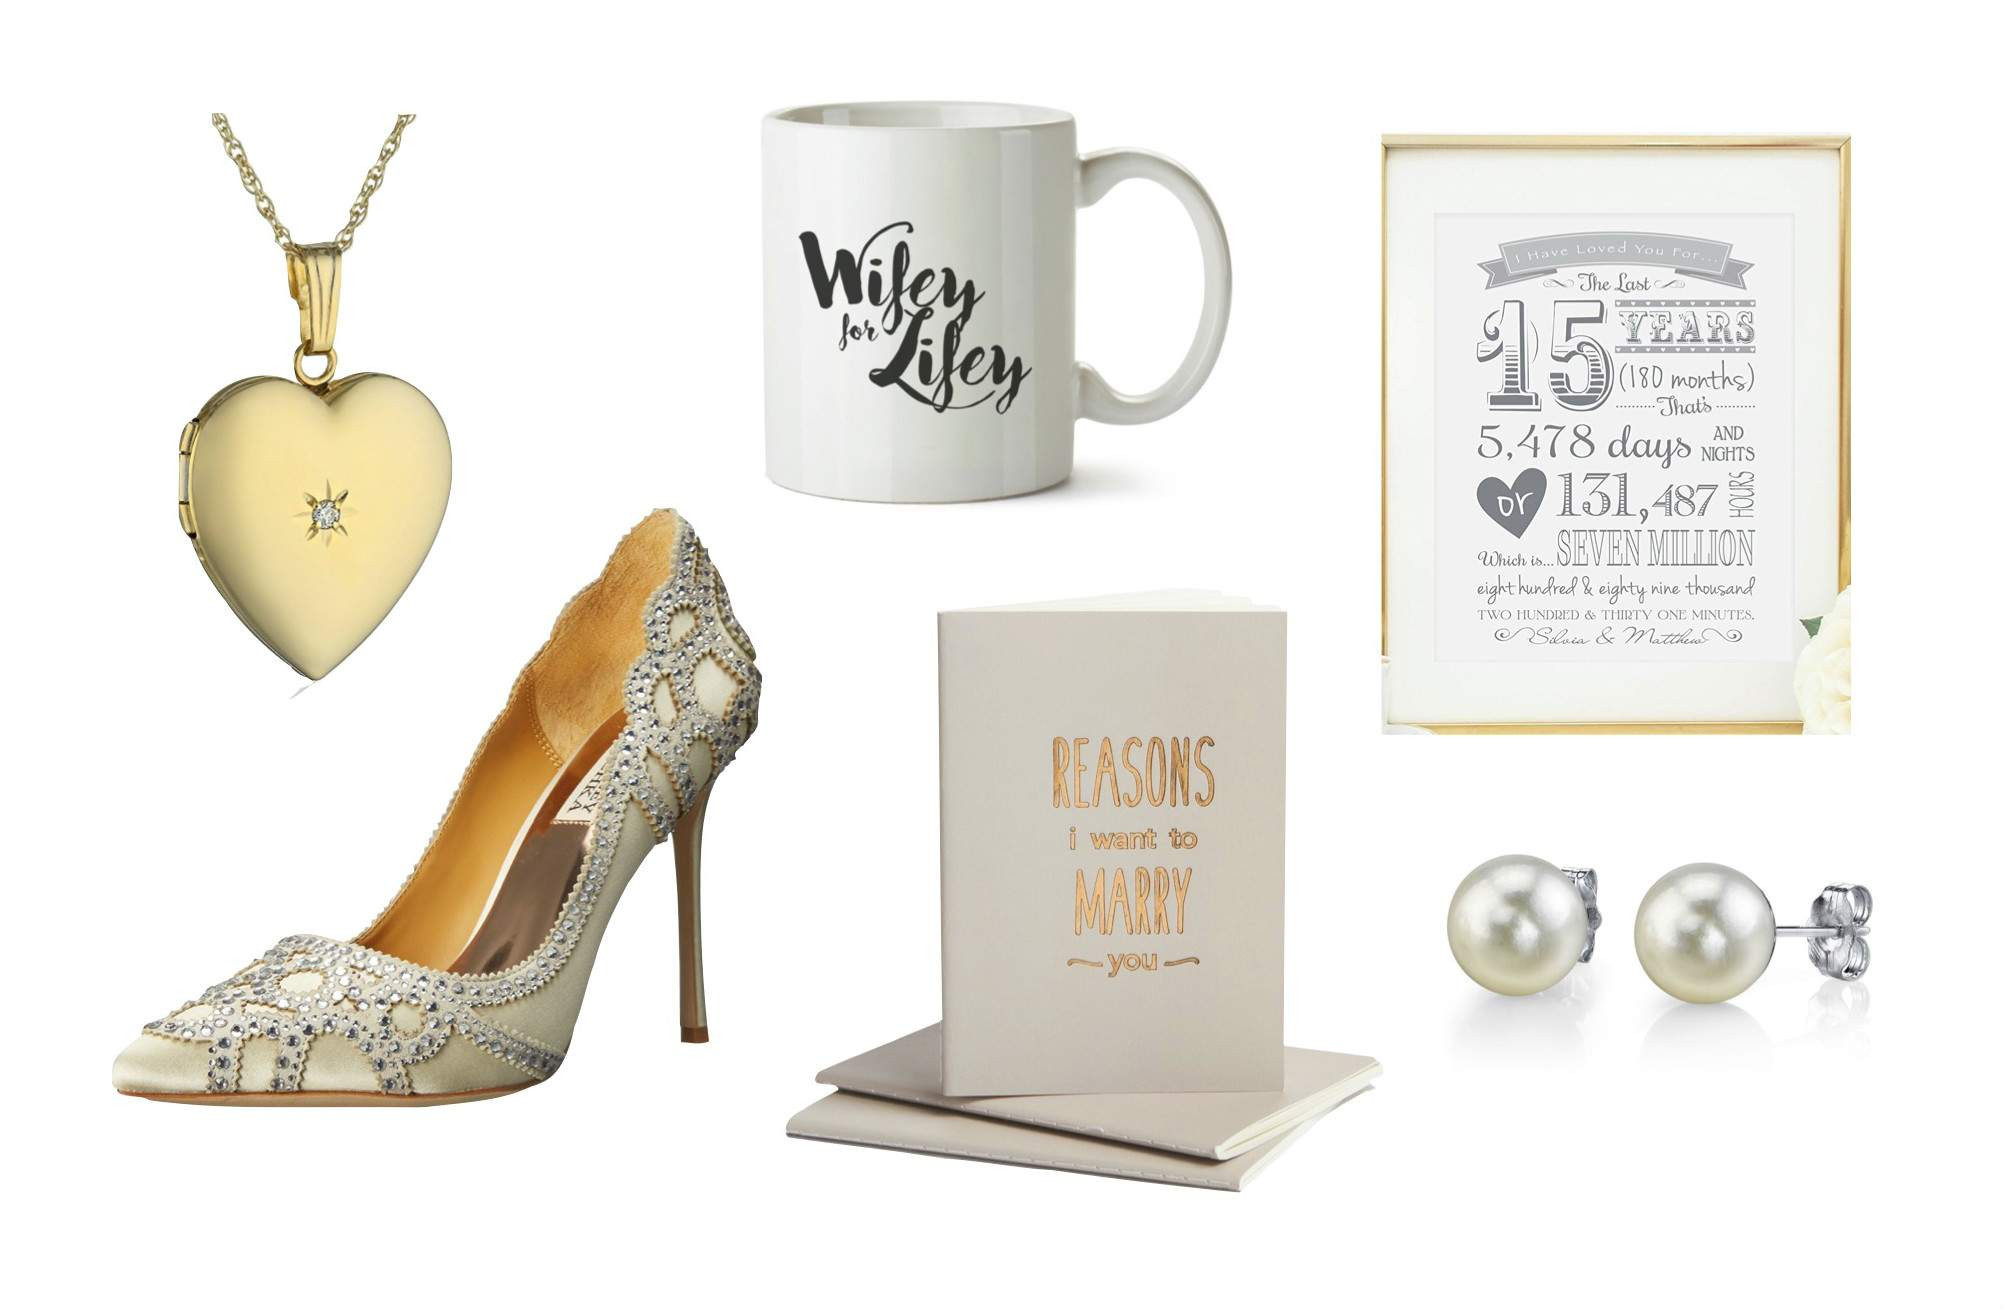 Best ideas about Wedding Gift Ideas For Groom . Save or Pin Best Wedding Day Gift Ideas From the Groom to the Bride Now.